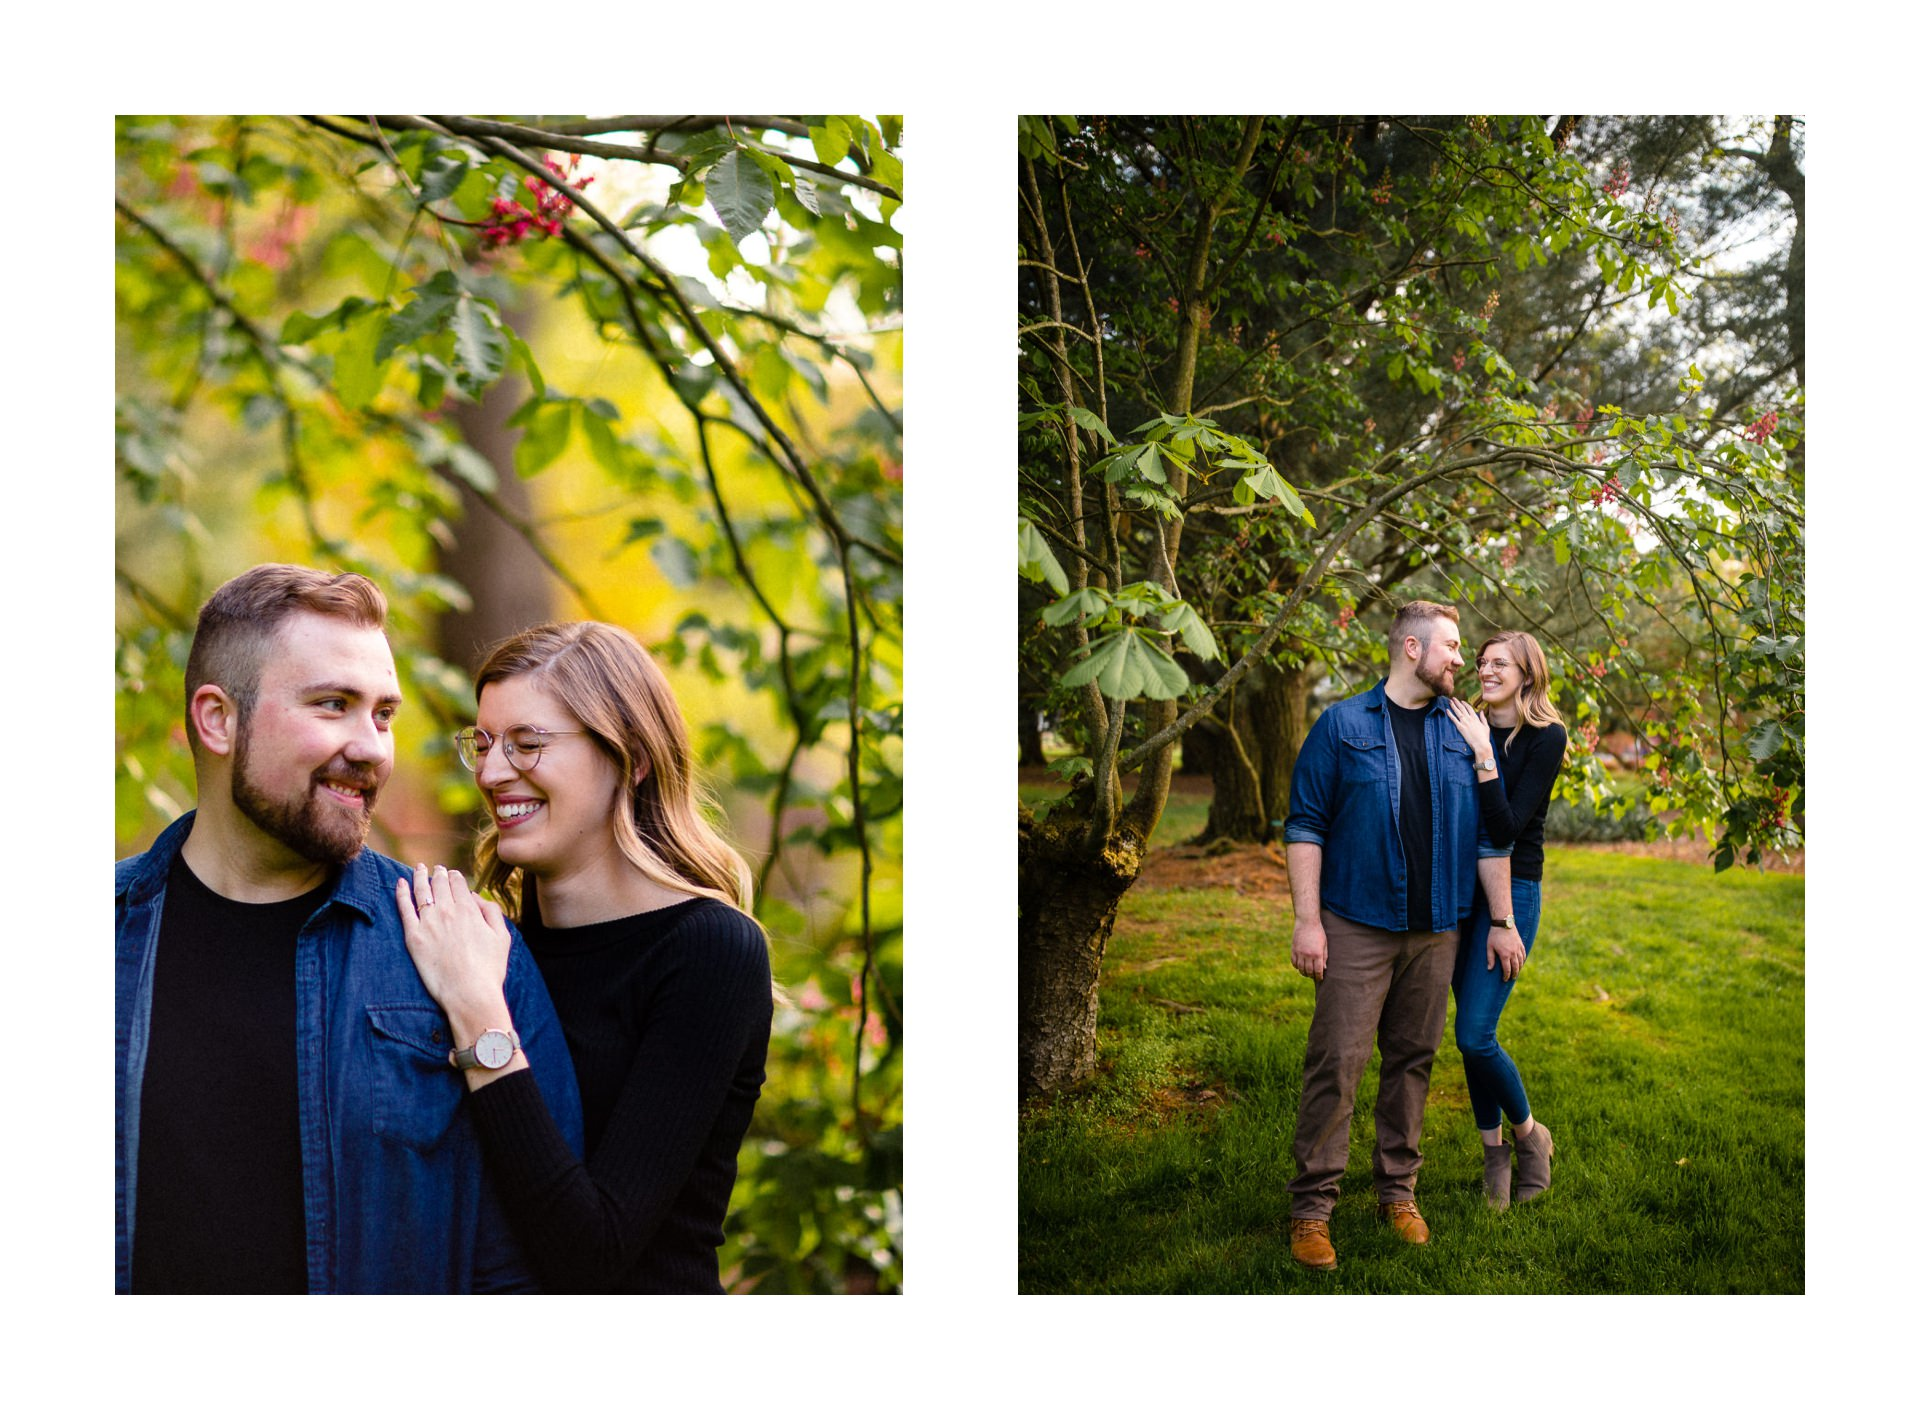 Spring Cleveland Botanical Gardens Engagement Photos 5.jpg